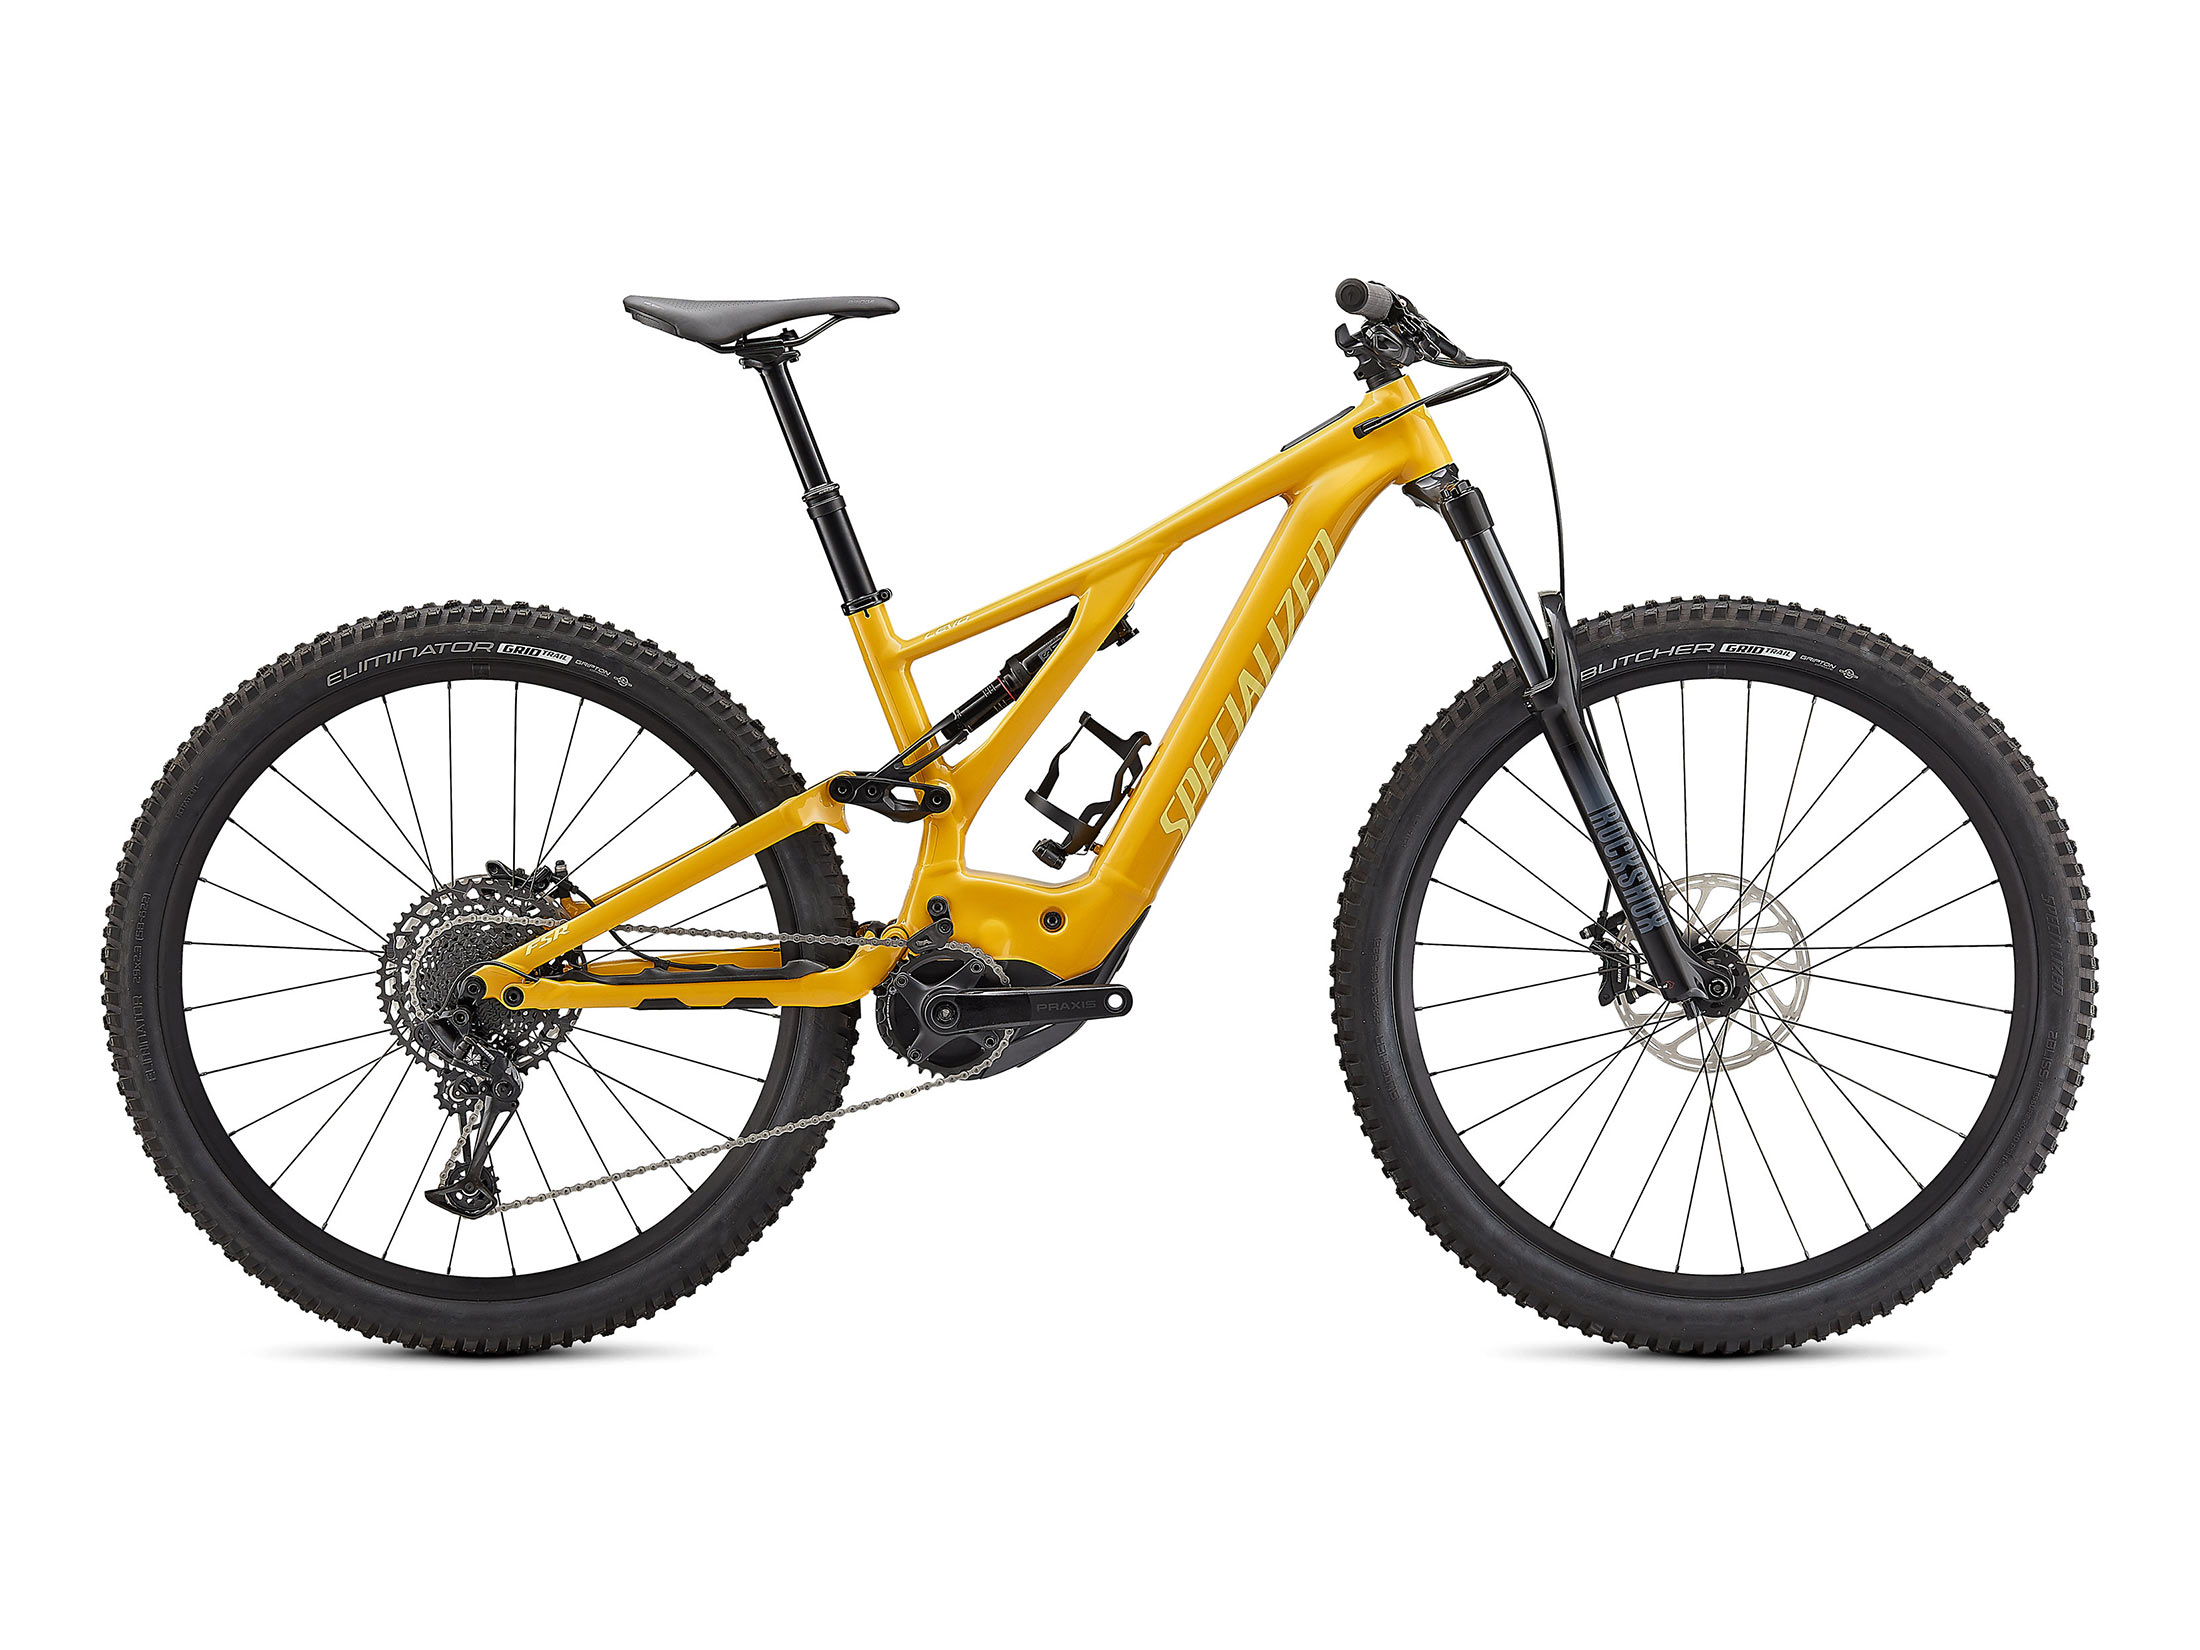 Specialized Turbo Levo e-Bike - Brassy Yellow